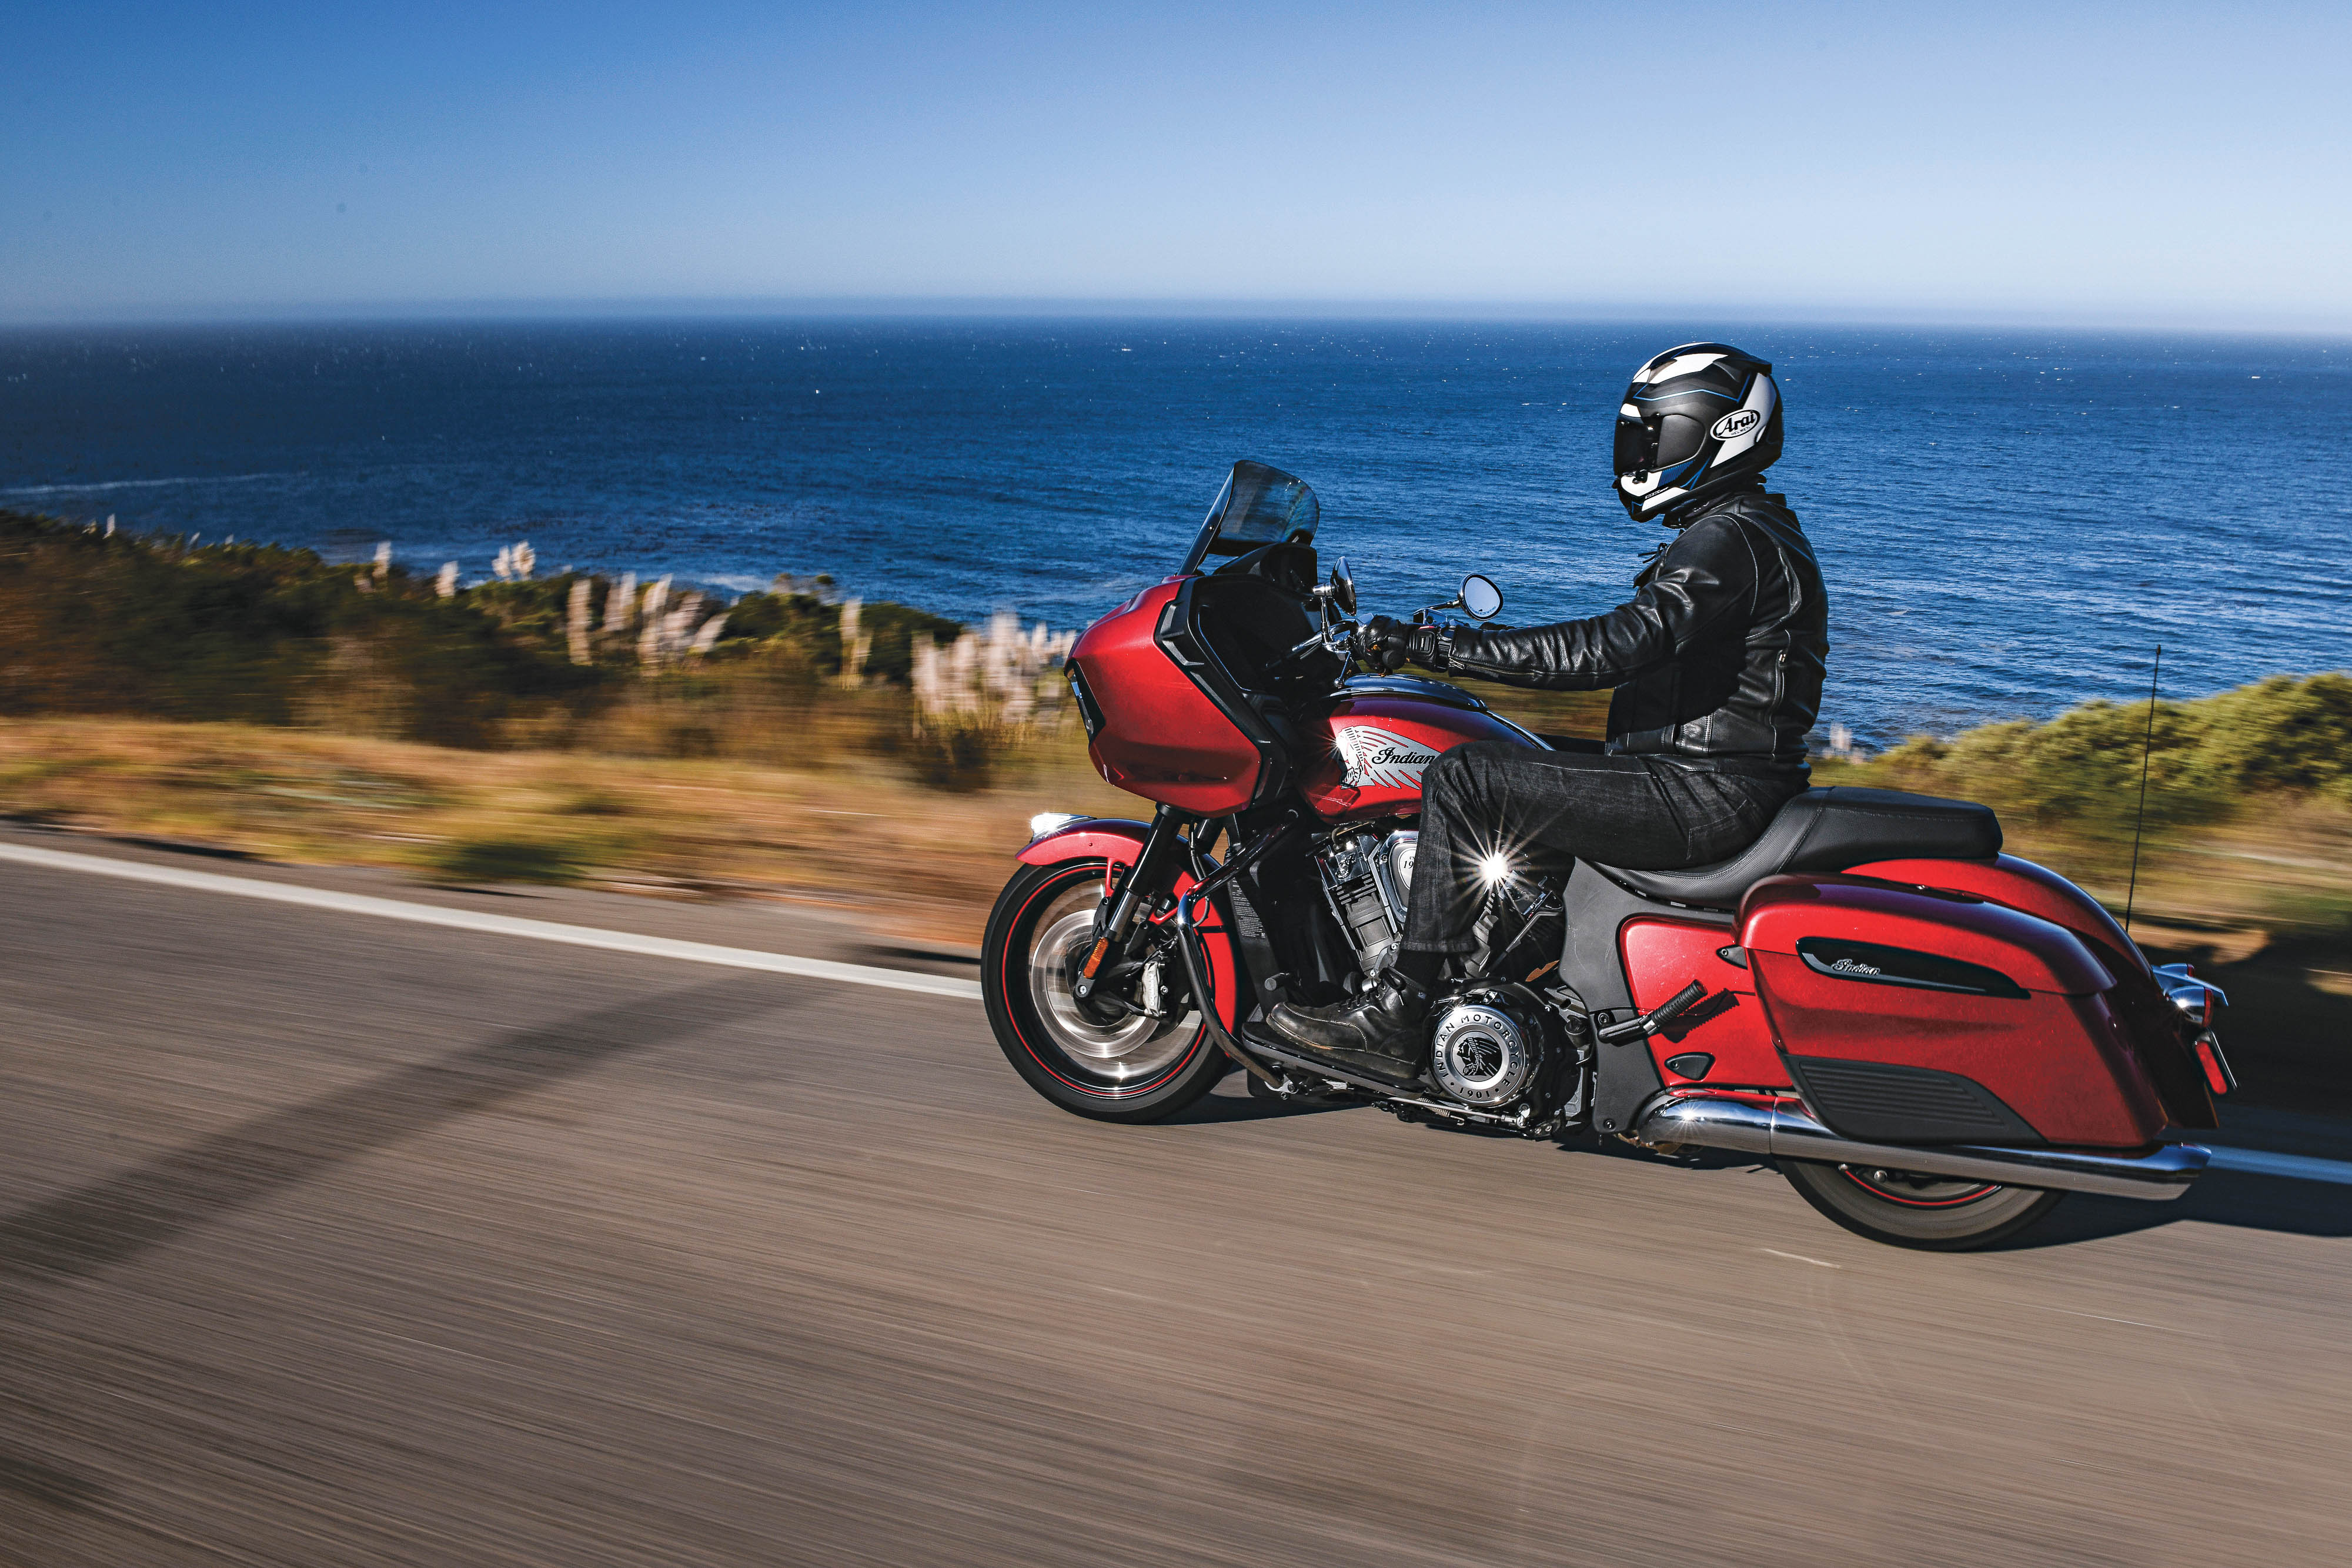 Indian brings the Challenger to the bagger segment